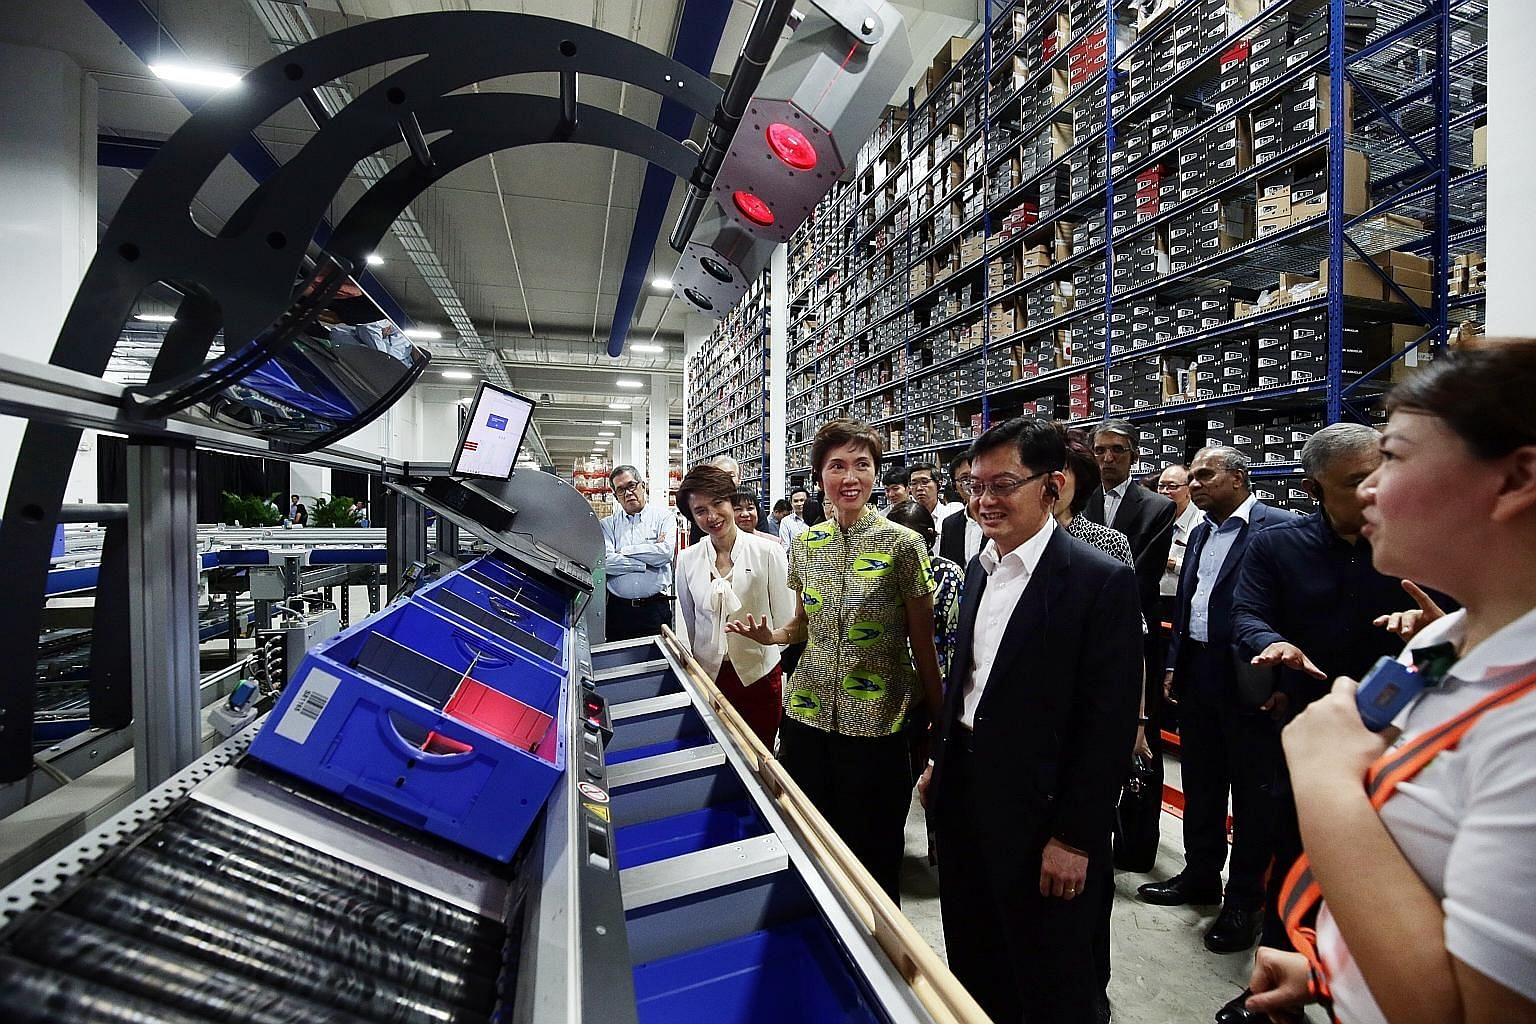 Finance Minister Heng Swee Keat (foreground), who chairs the Future Economy Council, with fellow council members, including Manpower Minister Josephine Teo and Senior Parliamentary Secretary Low Yen Ling, on a tour of the SingPost Regional eCommerce